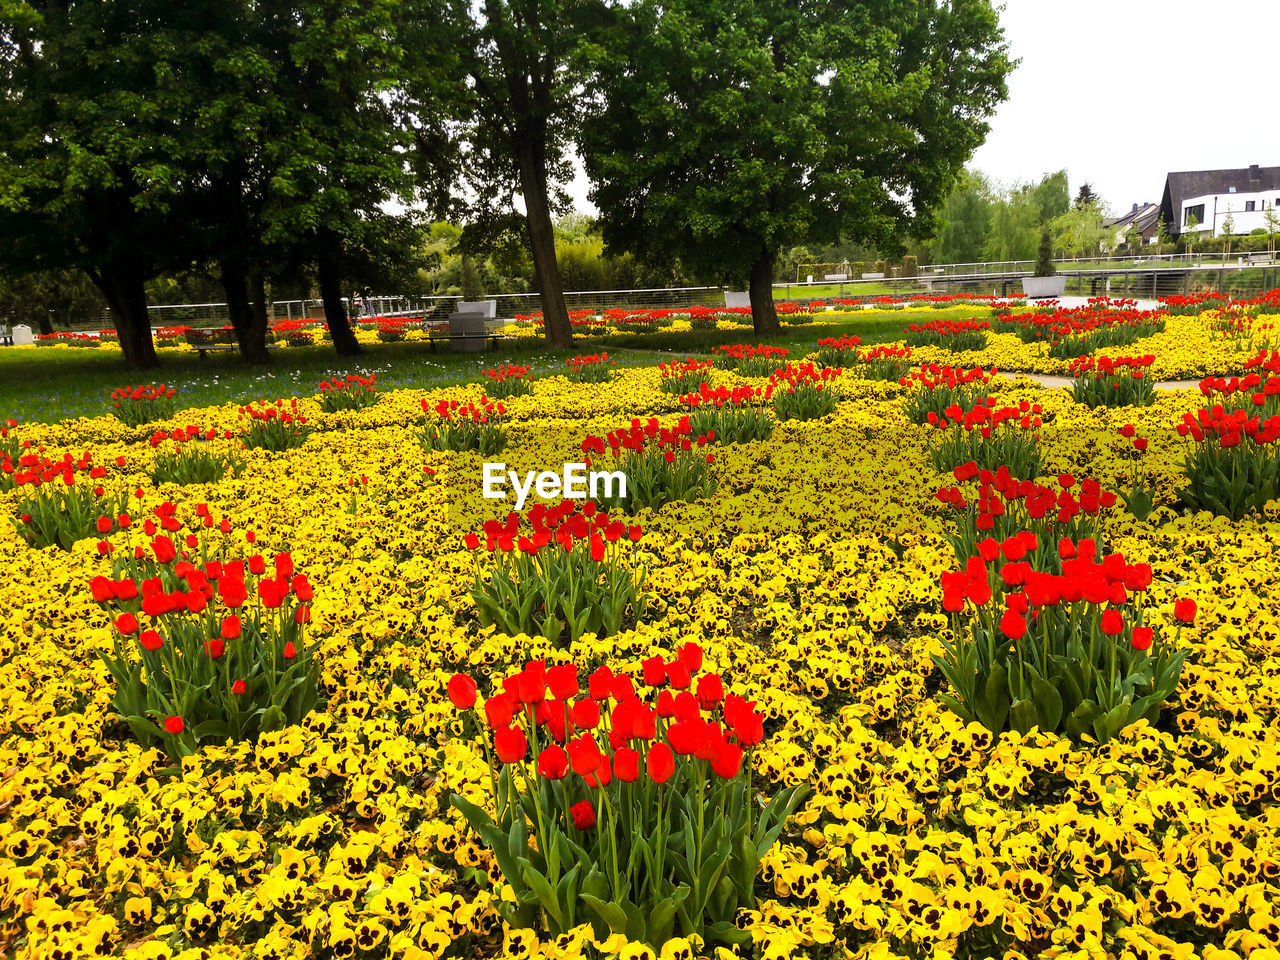 VIEW OF FLOWERING PLANTS IN PARK AT GARDEN